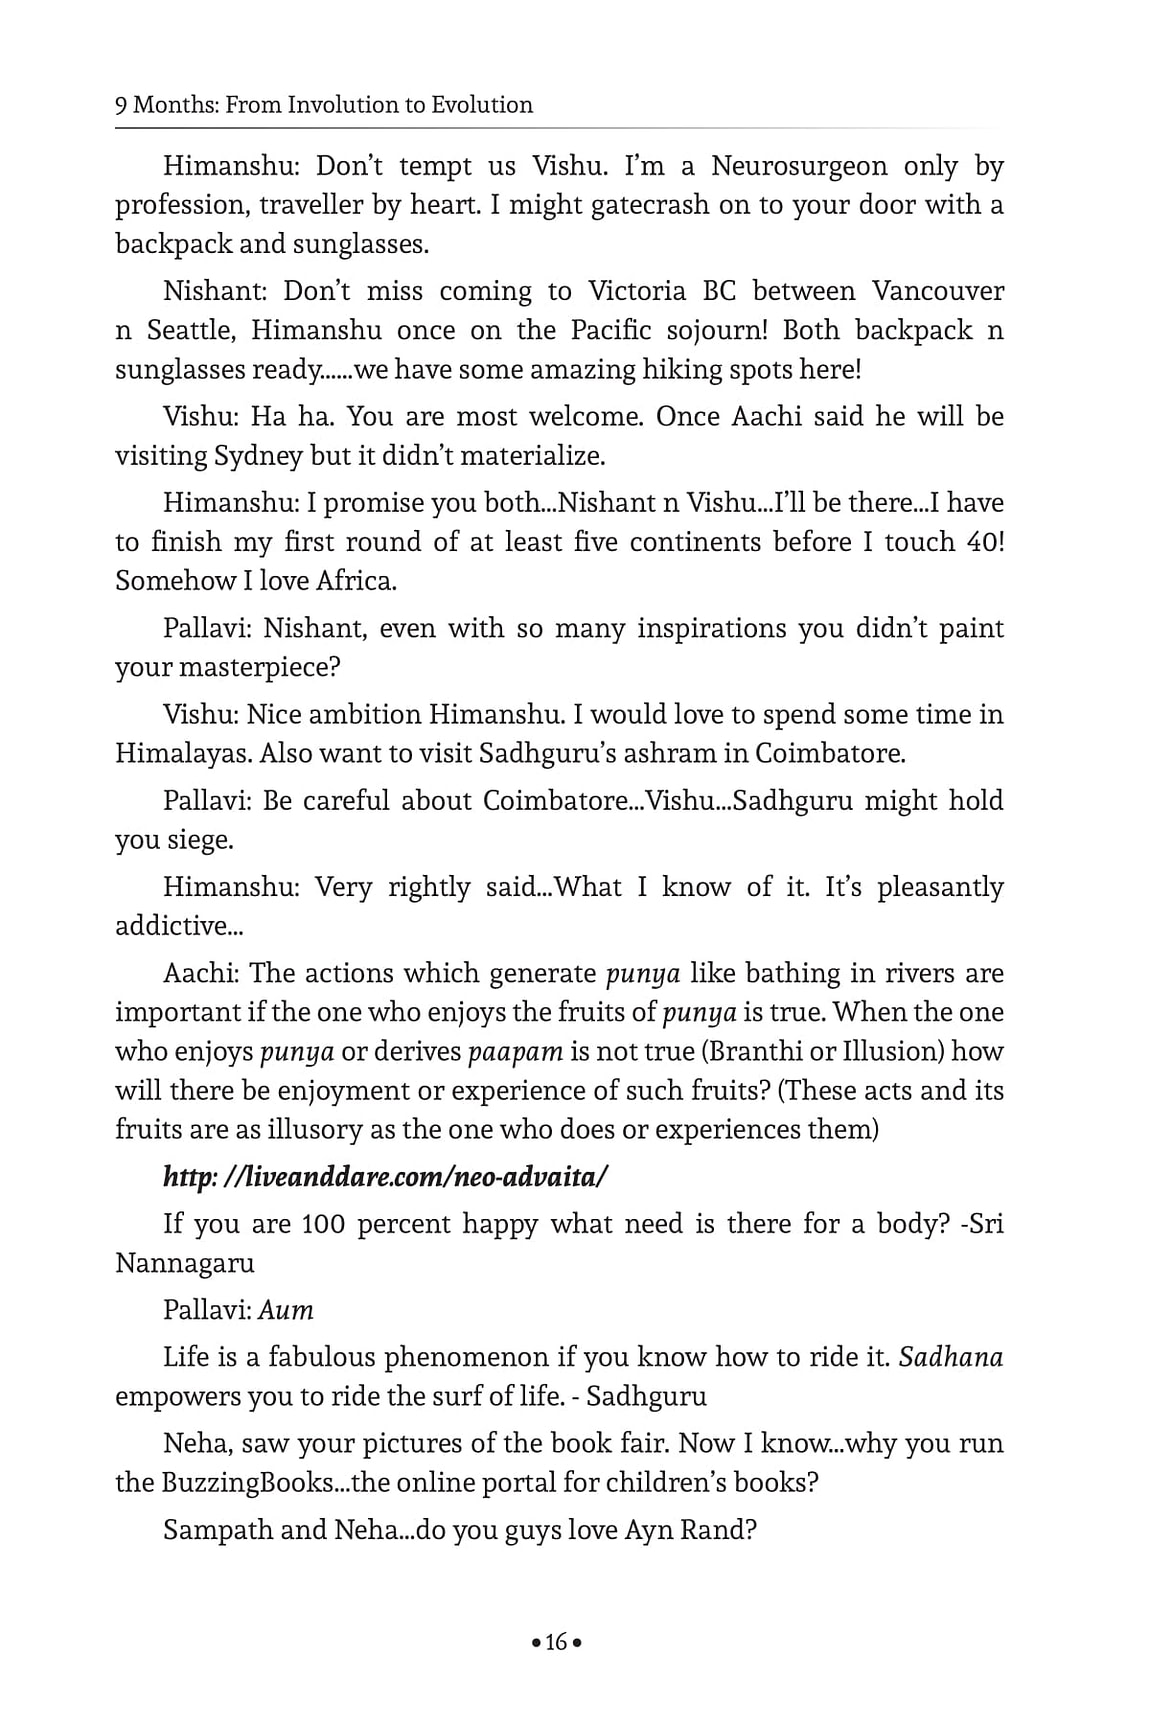 9-Months-From-Involution-to-Evolution-Book-By-Dr-Pallavi-Kwatra-042.jpg